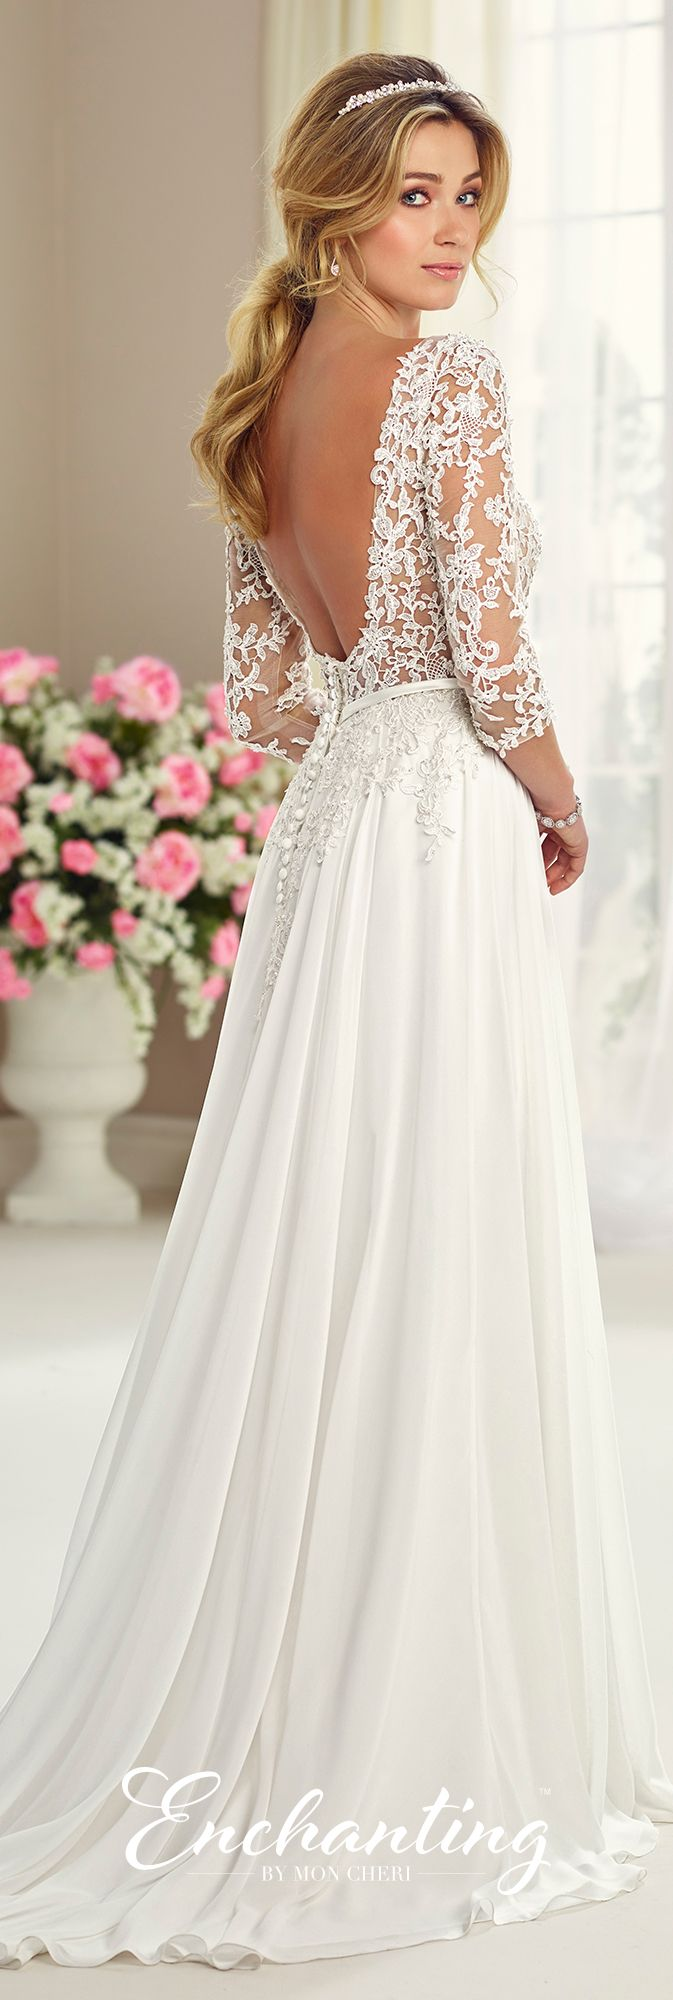 Best 25 wedding dresses ideas on pinterest lace wedding dresses chiffon tulle lace wedding gown enchanting by mon cheri 217108 junglespirit Gallery